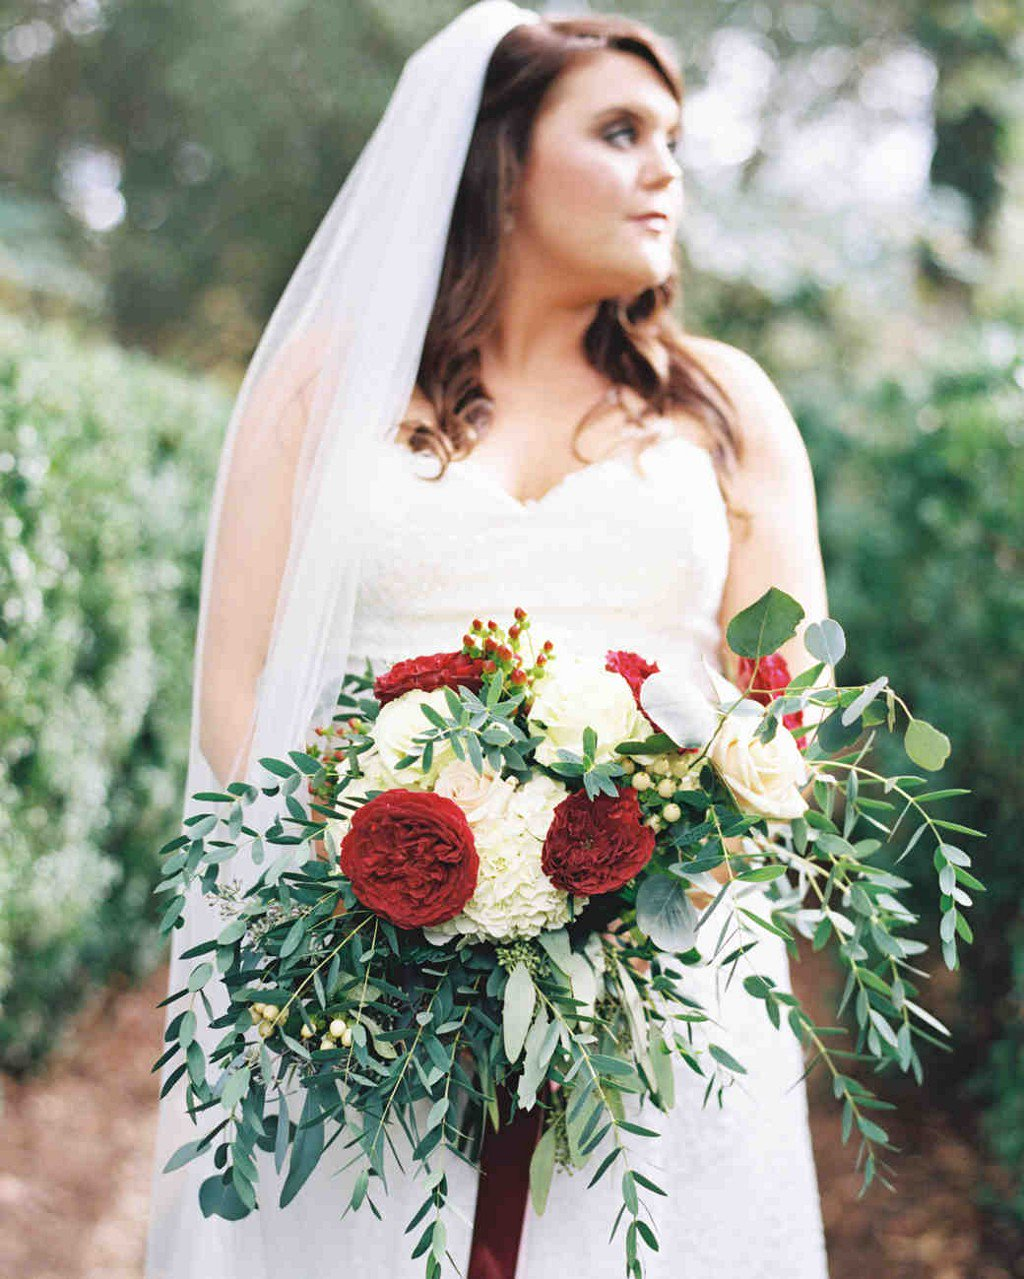 25 Wedding Bouquets with Berries https://t.co/Ge1GNhn30a https://t.co/oD0GHGKrMs